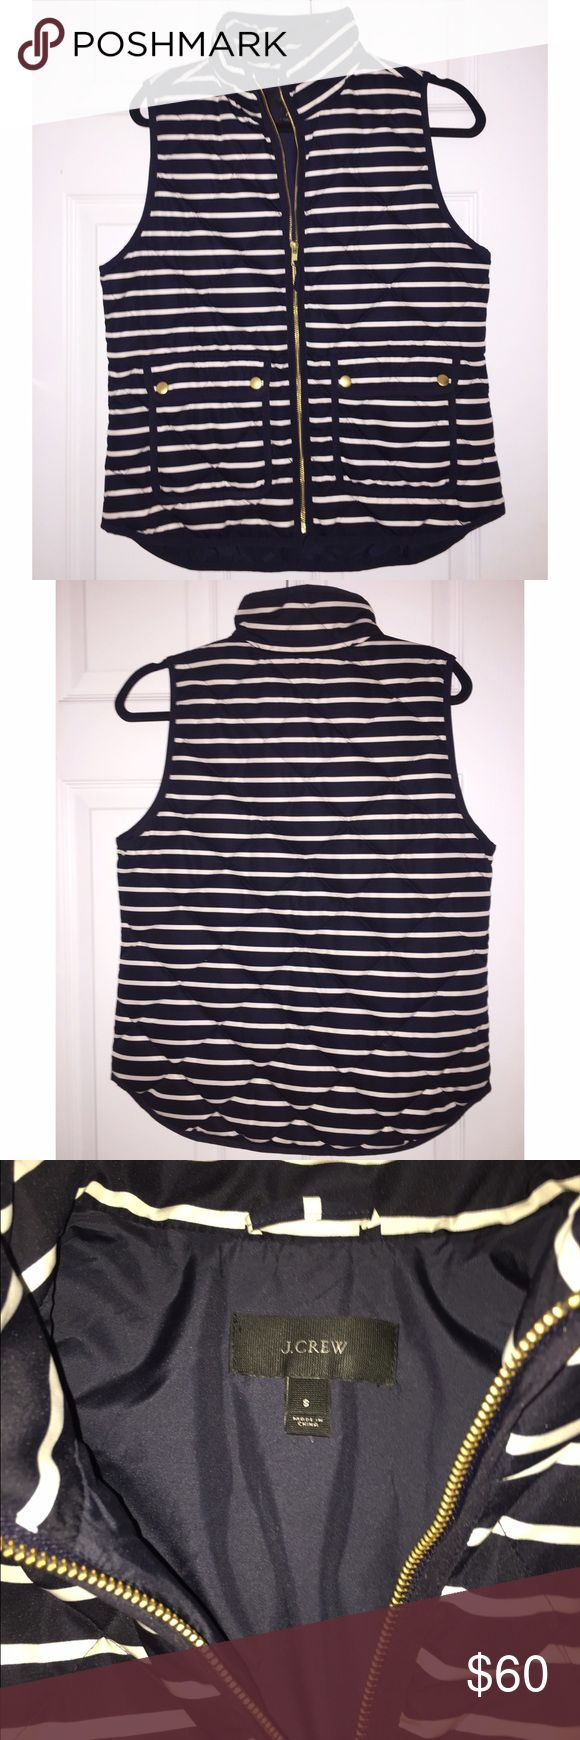 J Crew Excursion quilted striped vest Quilted Excursion Jcrew vest- only wore this once! Just like new. No stains or tears. Navy and white! J. Crew Jackets & Coats Vests